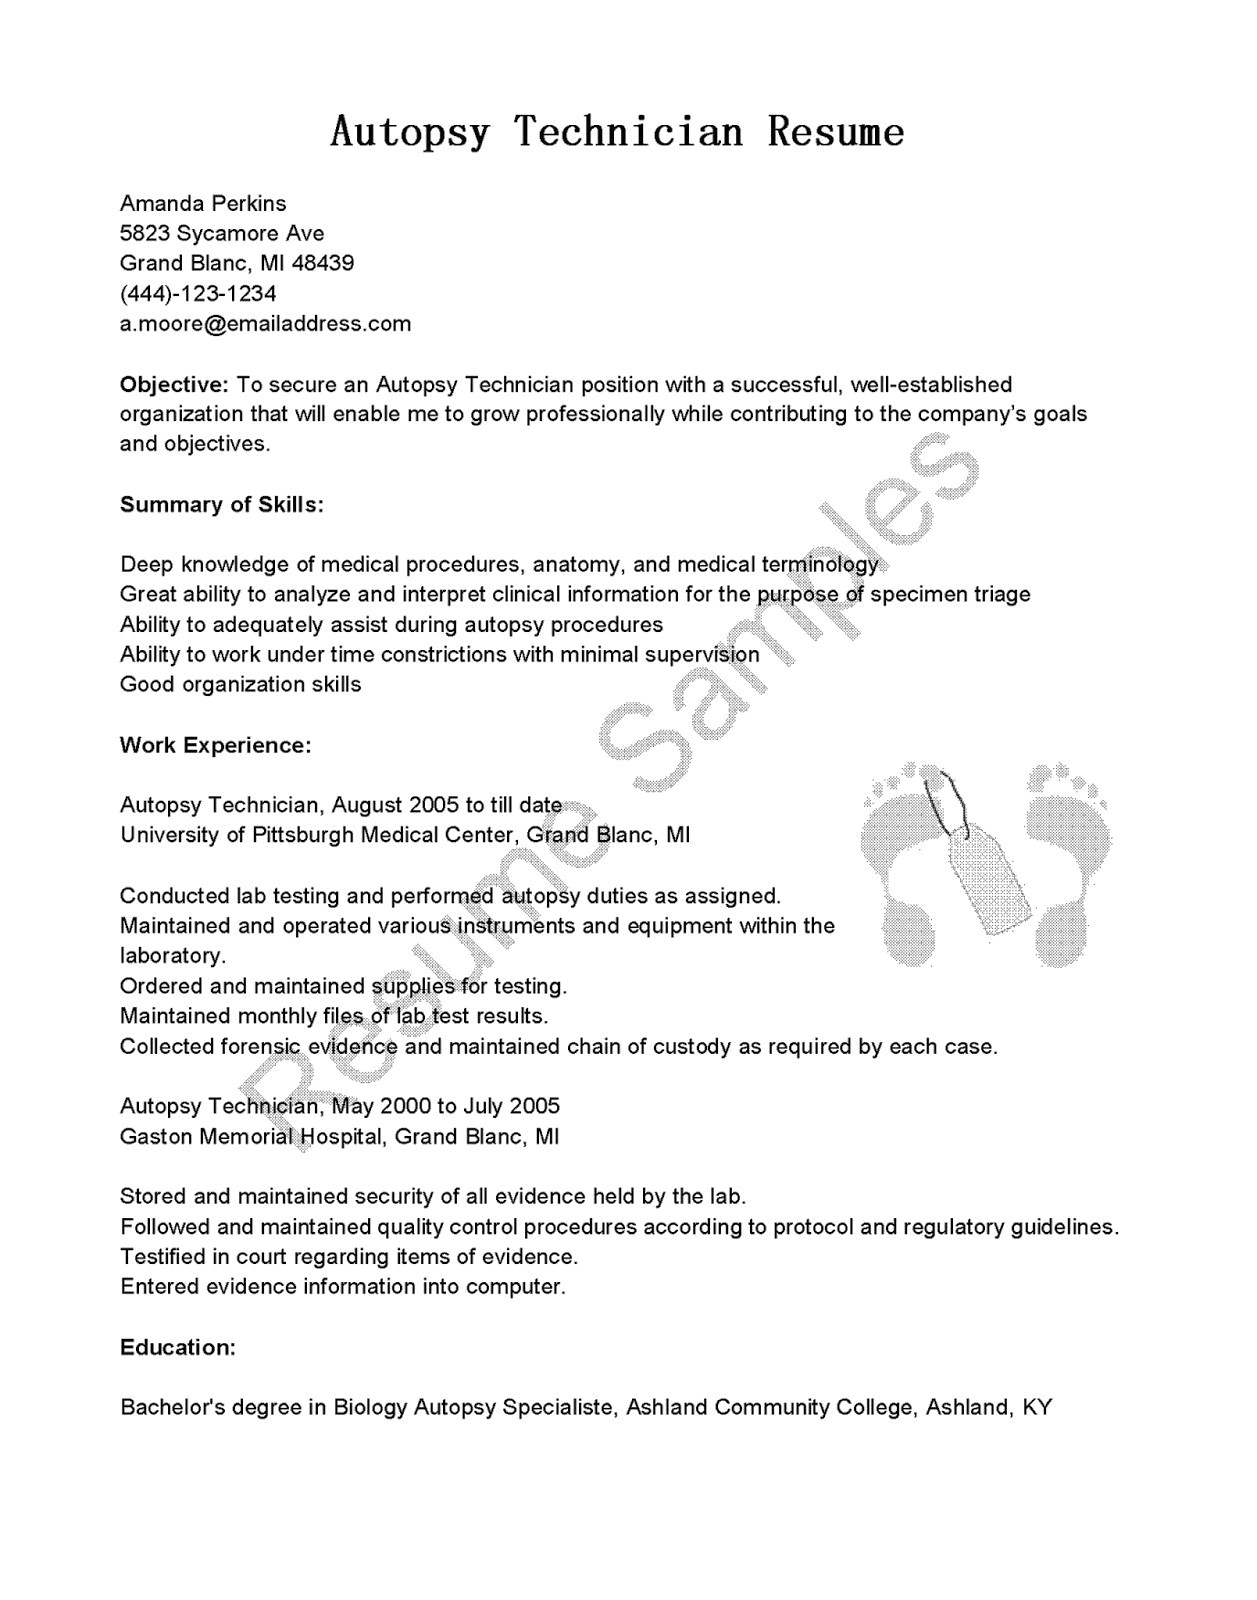 resume for someone with no experience Collection-Cv Resume Format Beautiful Unique Pr Resume Template Elegant Dictionary Template 0d Archives resume for someone with no experience 14-h